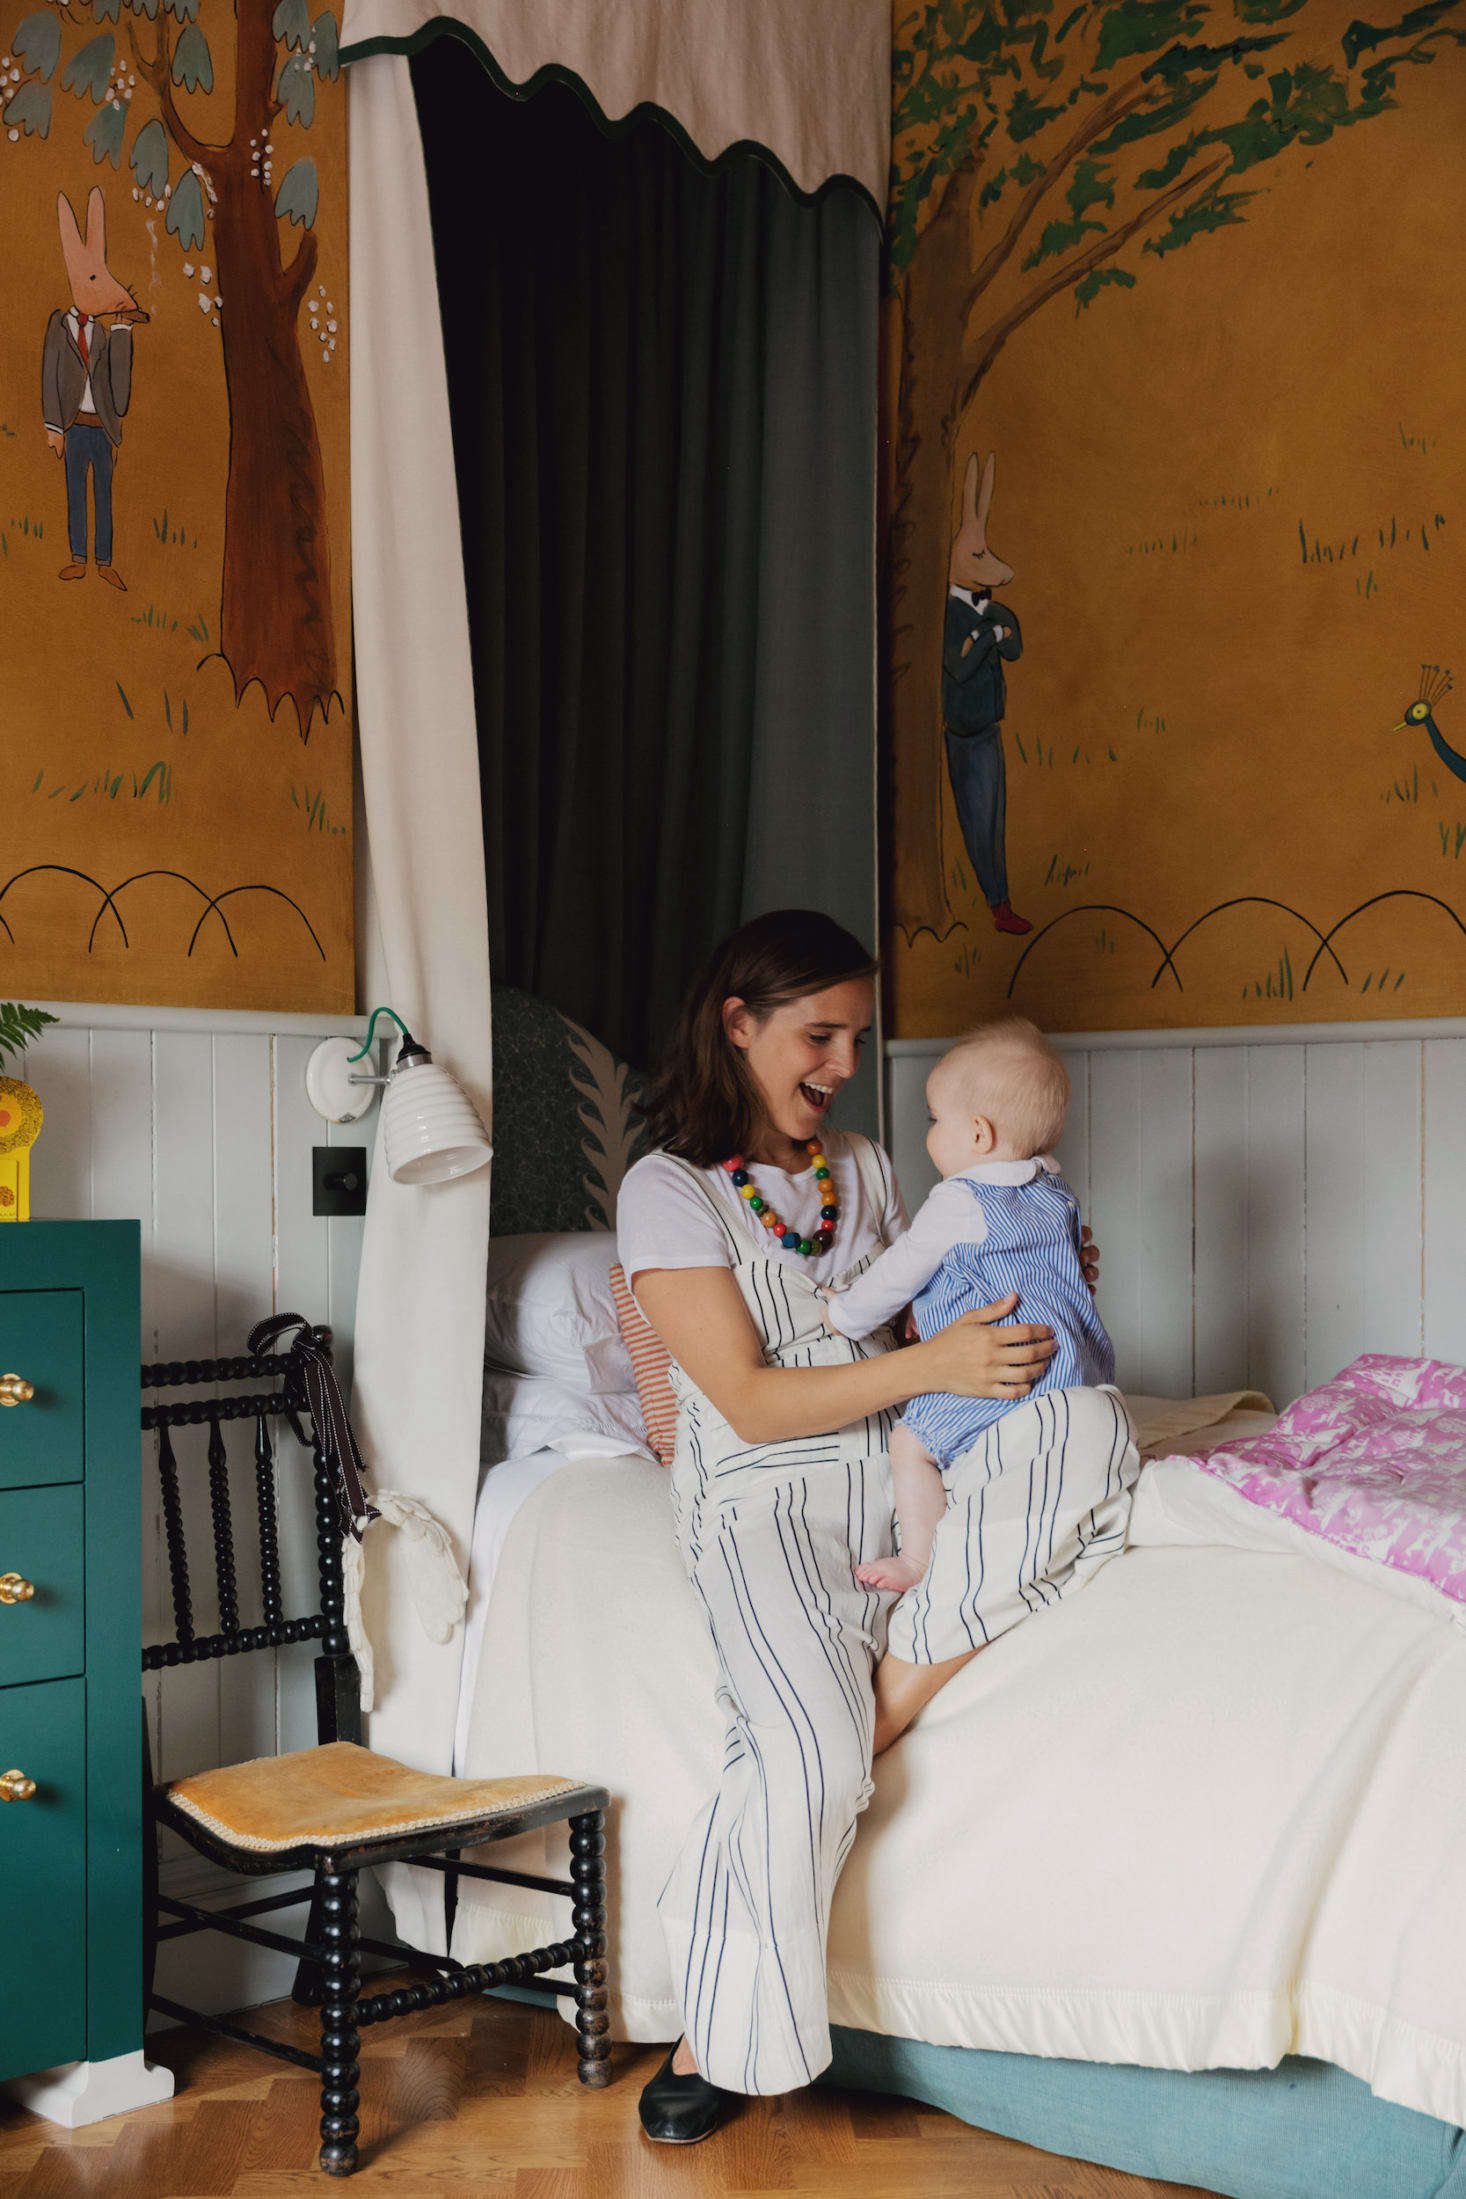 Heuman with her baby in the whimsical bedroom of her older daughter, a toddler.